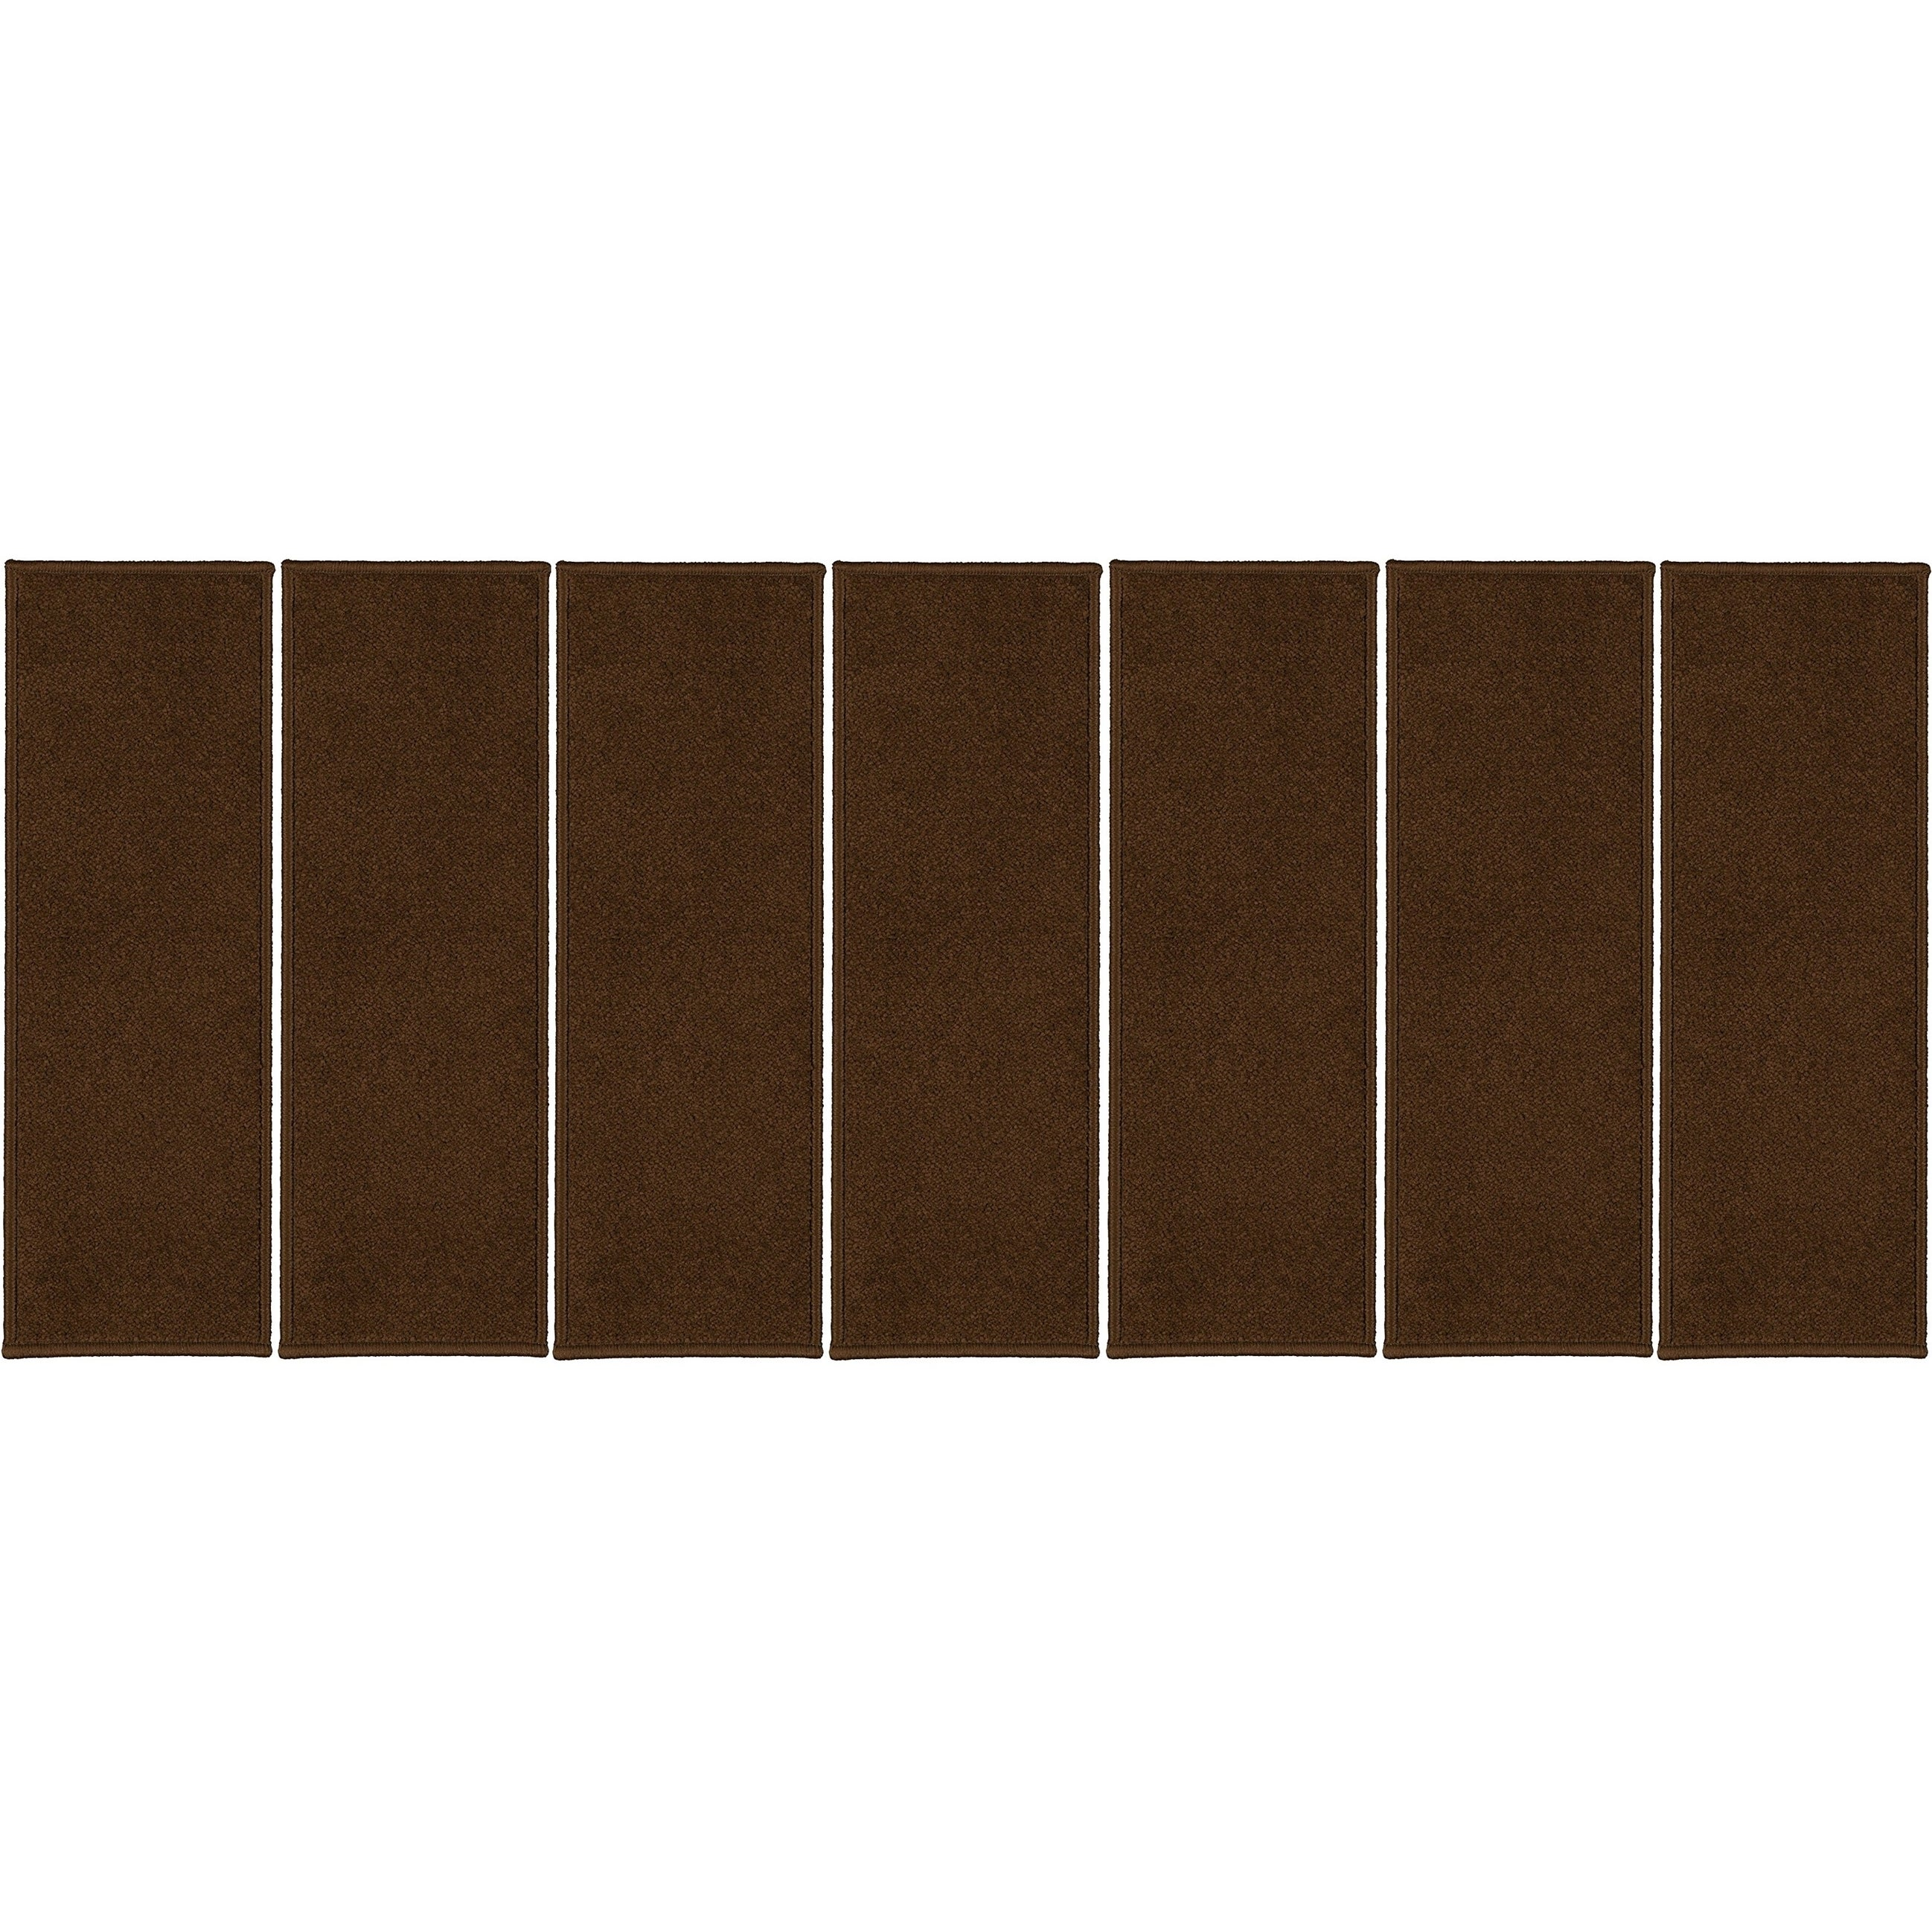 Casatreads Nonslip Rubber Backed Stair Tread (9 X 26.5)   Free Shipping  Today   Overstock.com   23429733